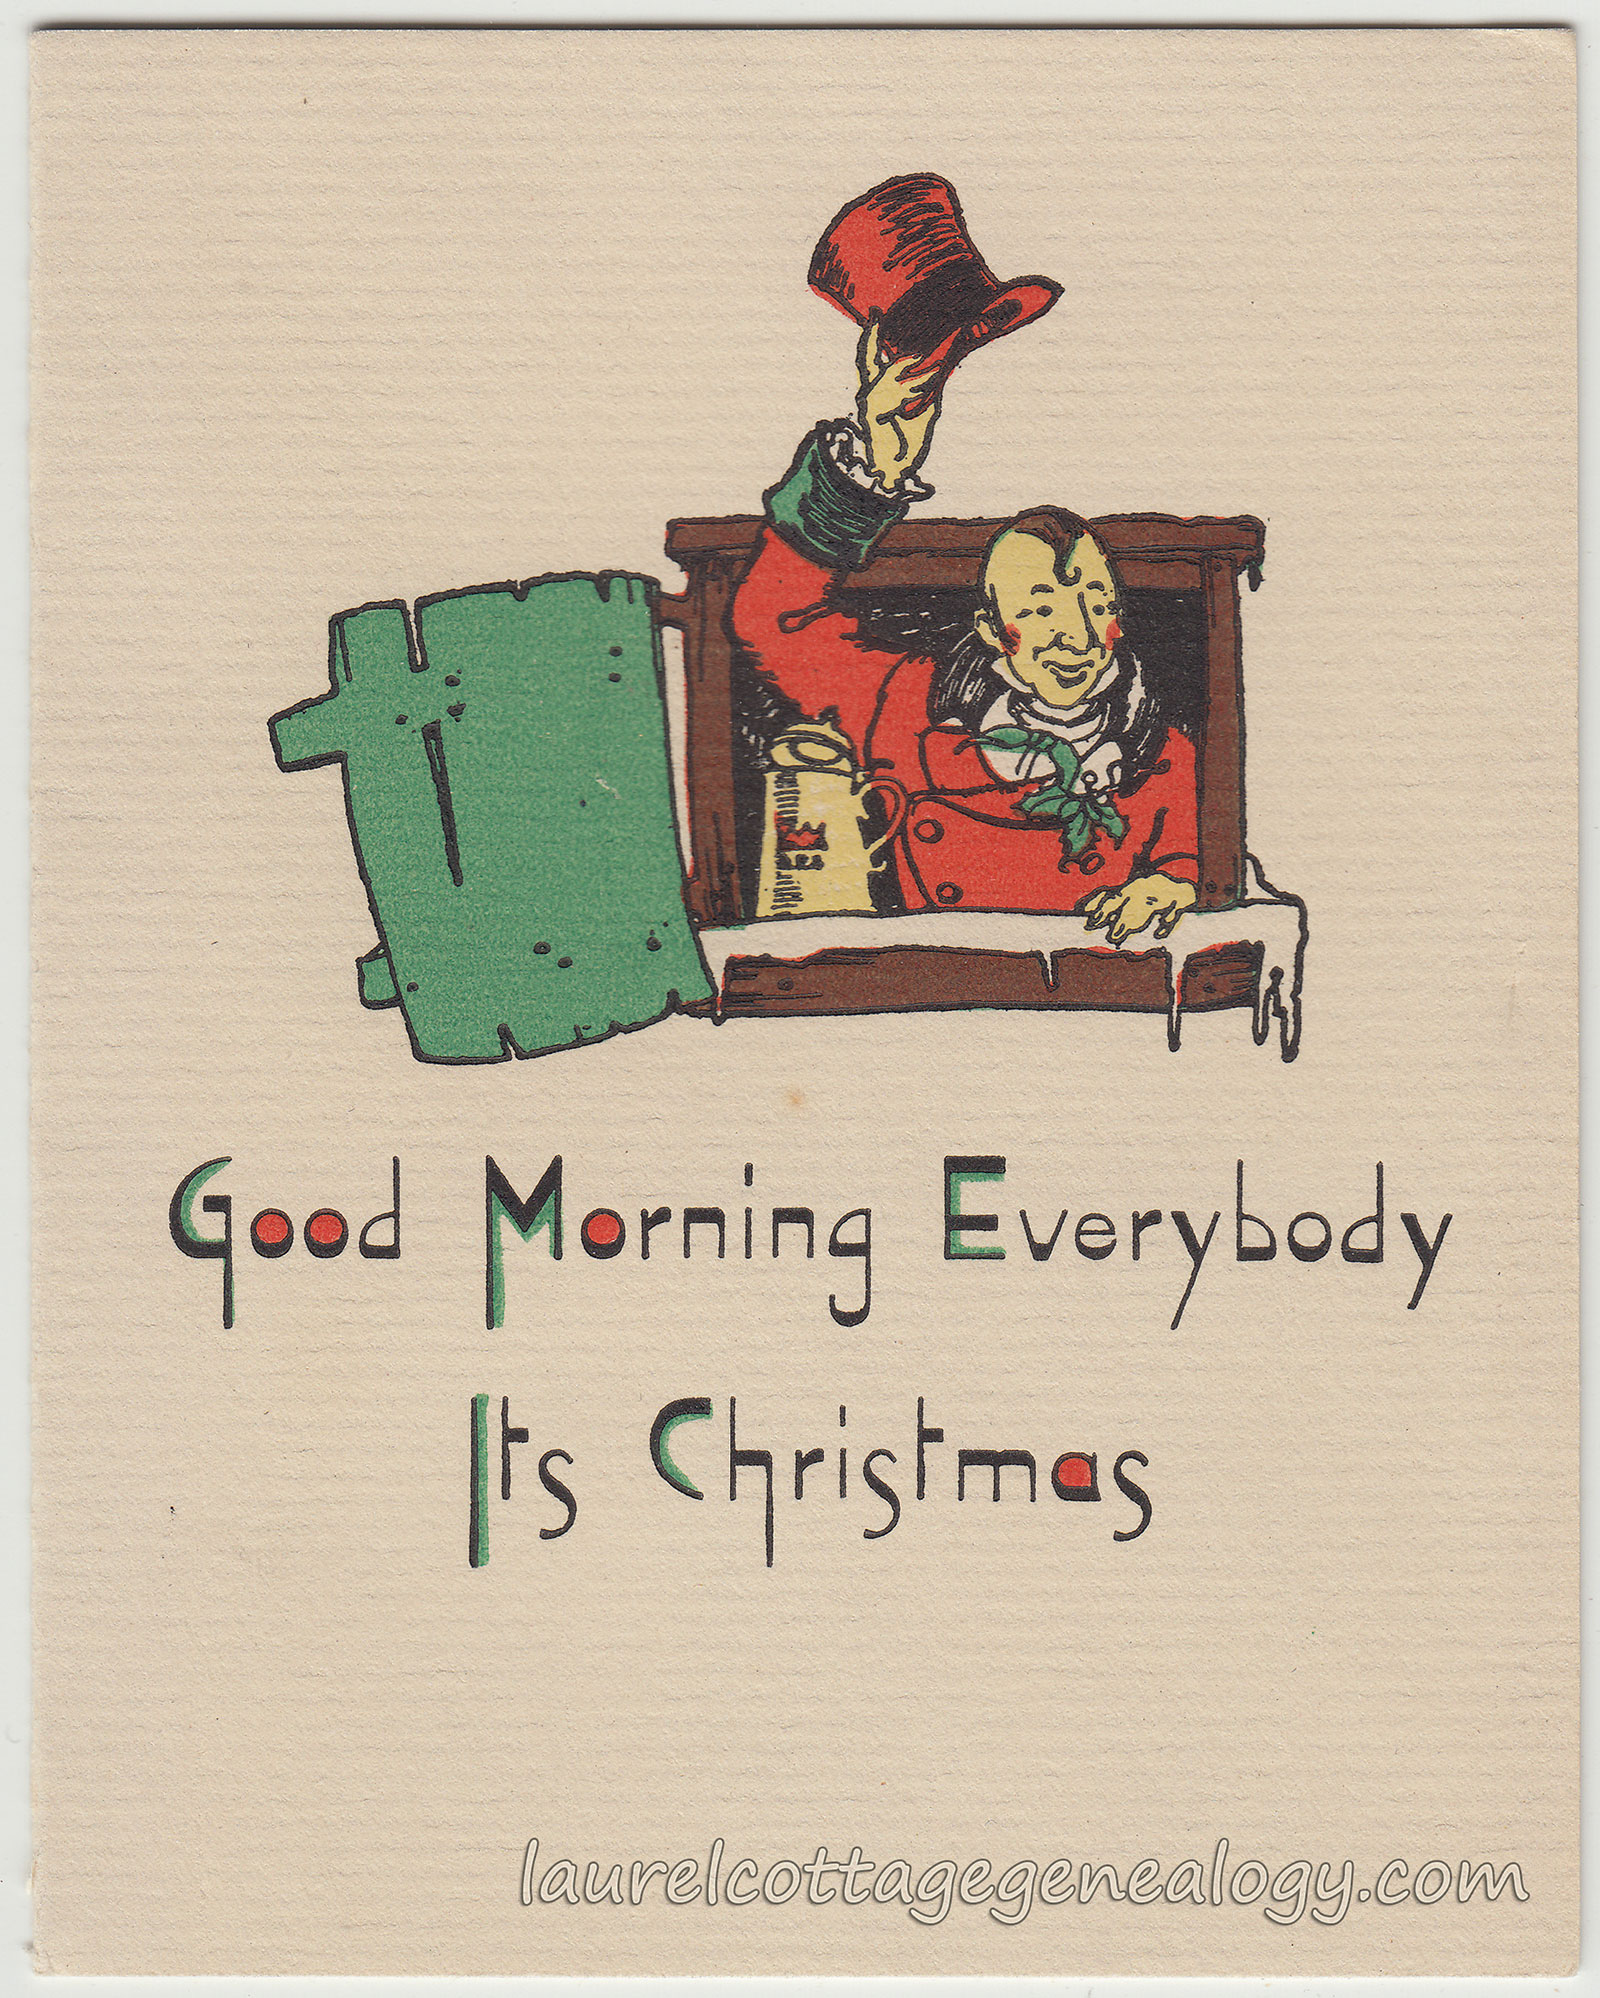 Good Morning All And Sundry : Antique and vintage christmas cards laurel cottage genealogy